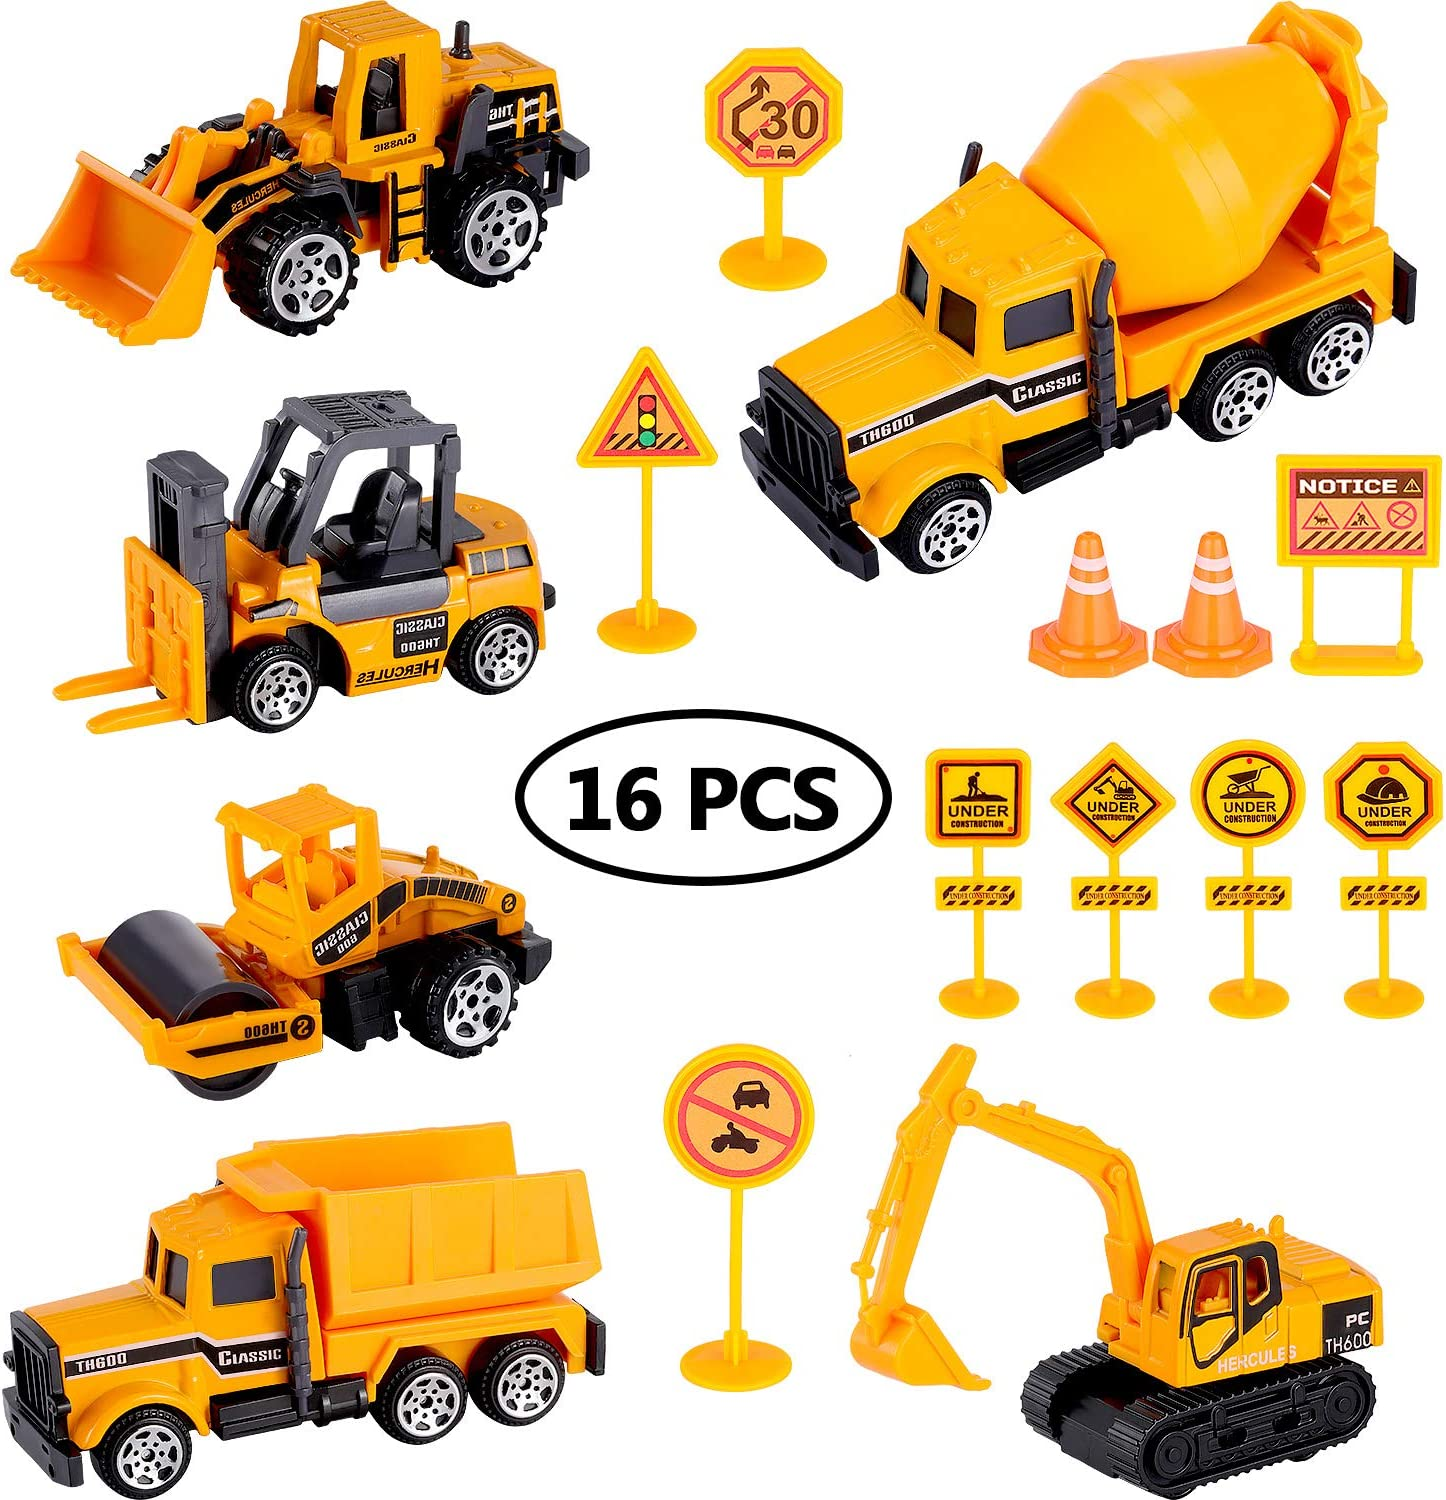 Mail order cheap Vehicle Toy Set Includes 6 Max 81% OFF Pieces Vehicles Ro 10 and Mini